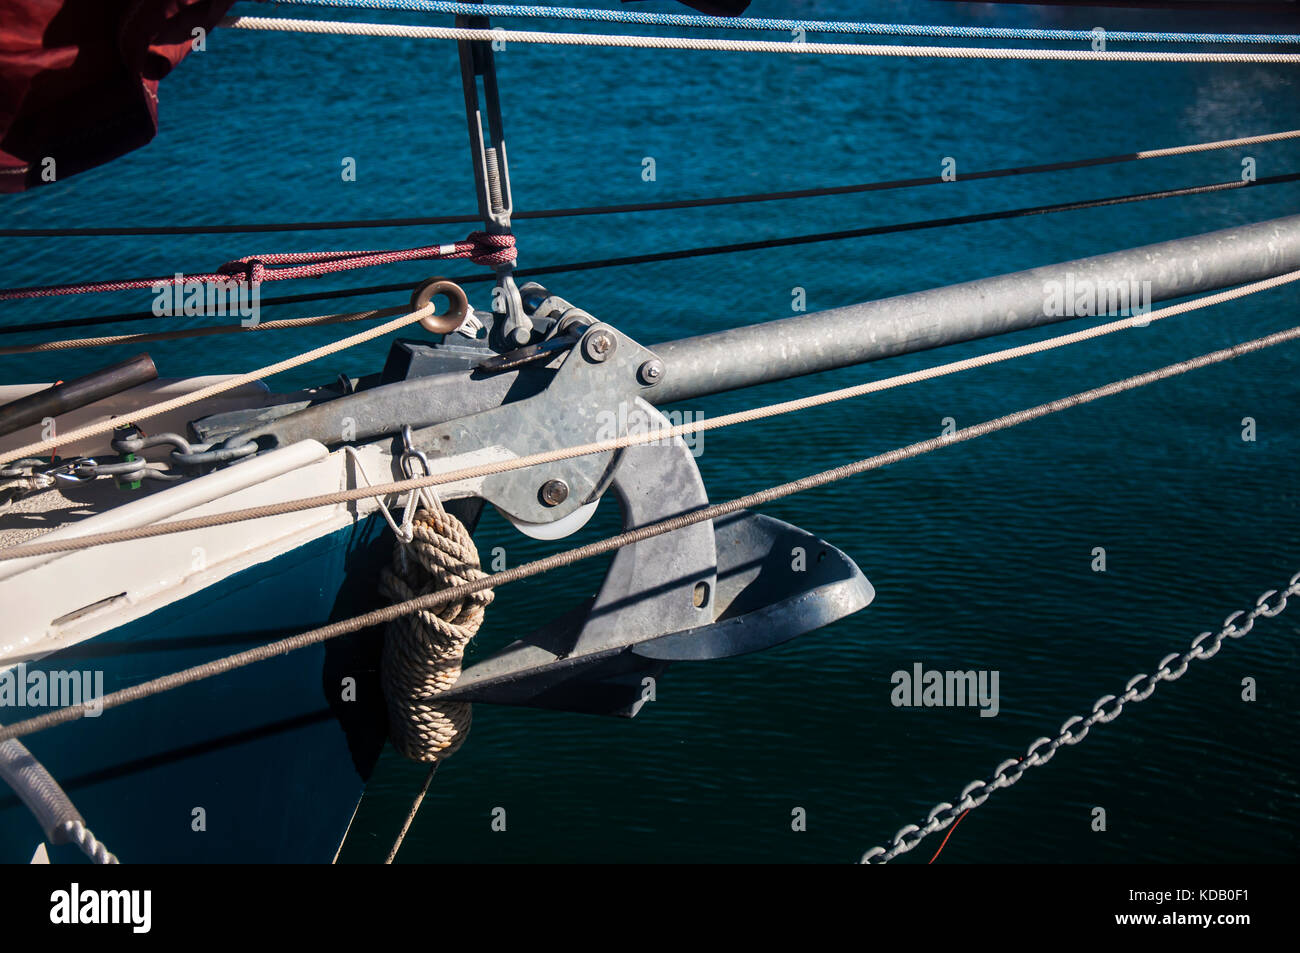 Bow of the traditional sailing boat. - Stock Image